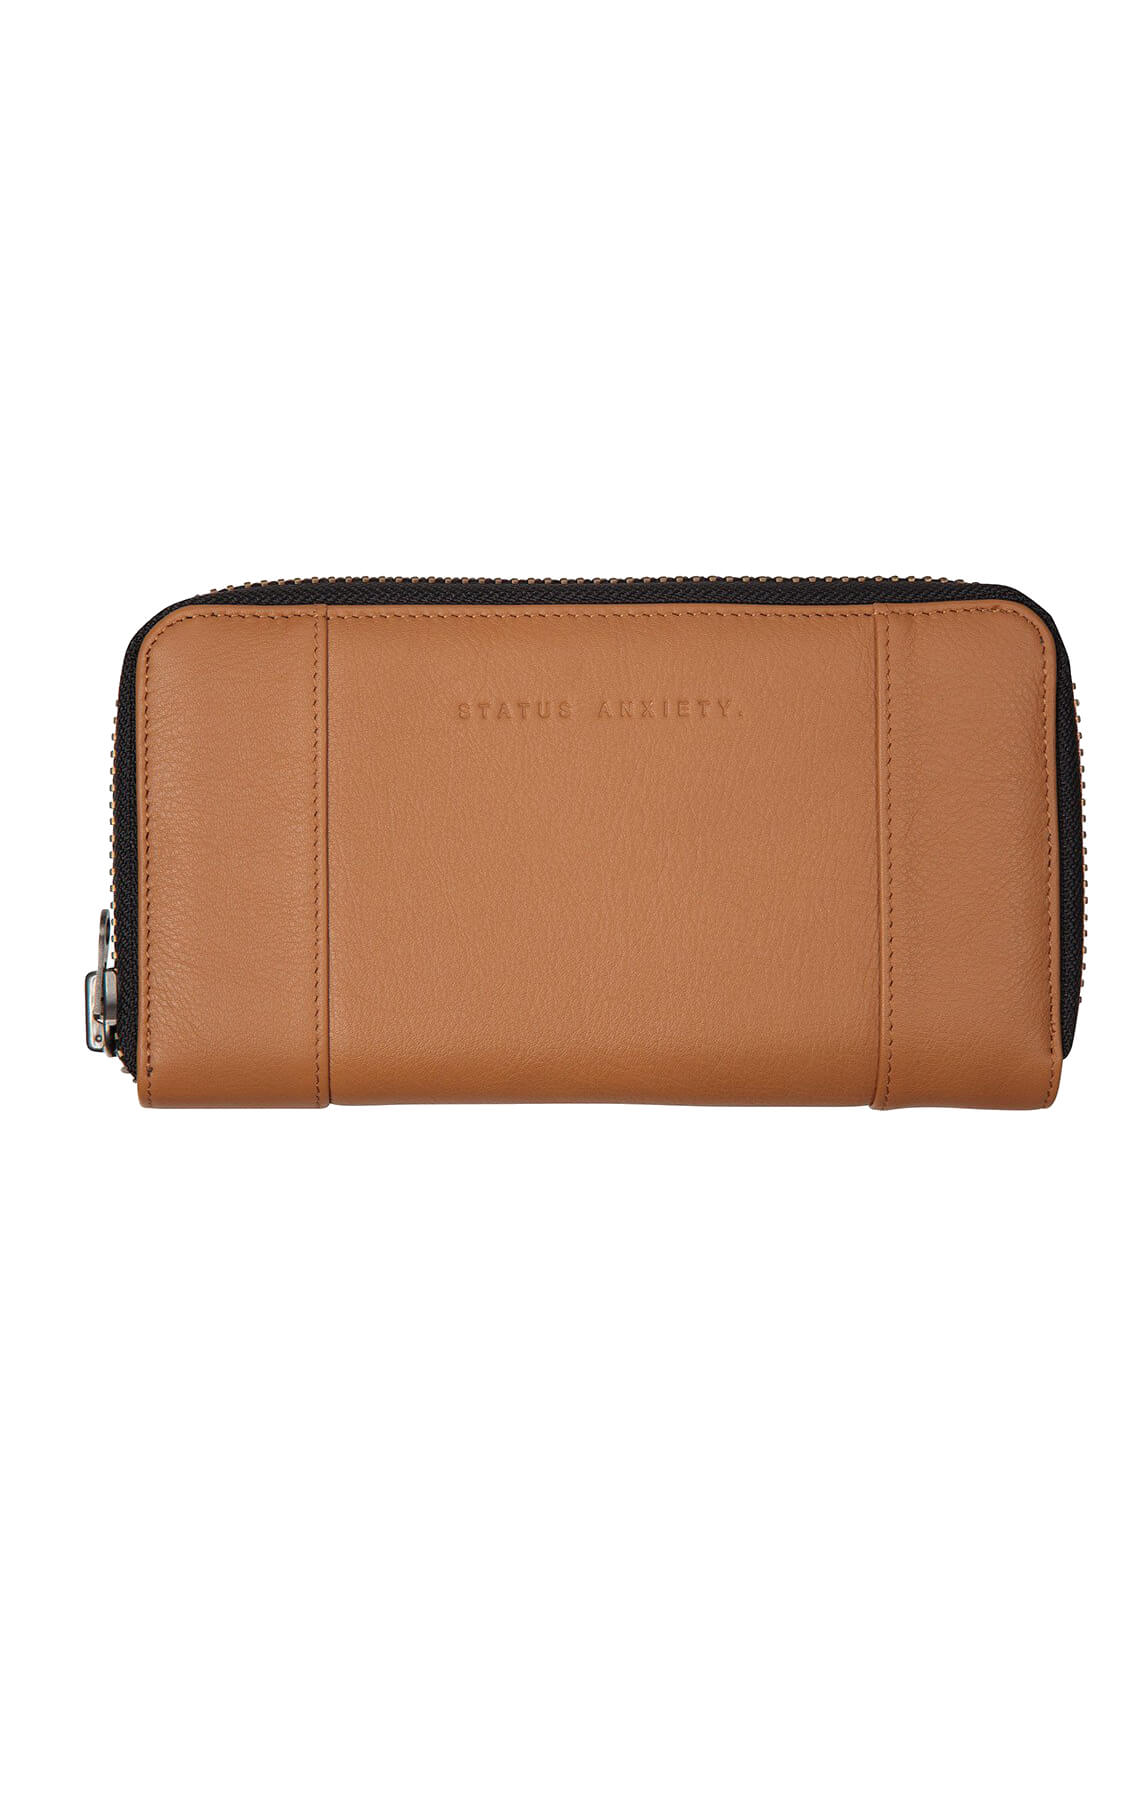 status anxiety state of flux wallet tan